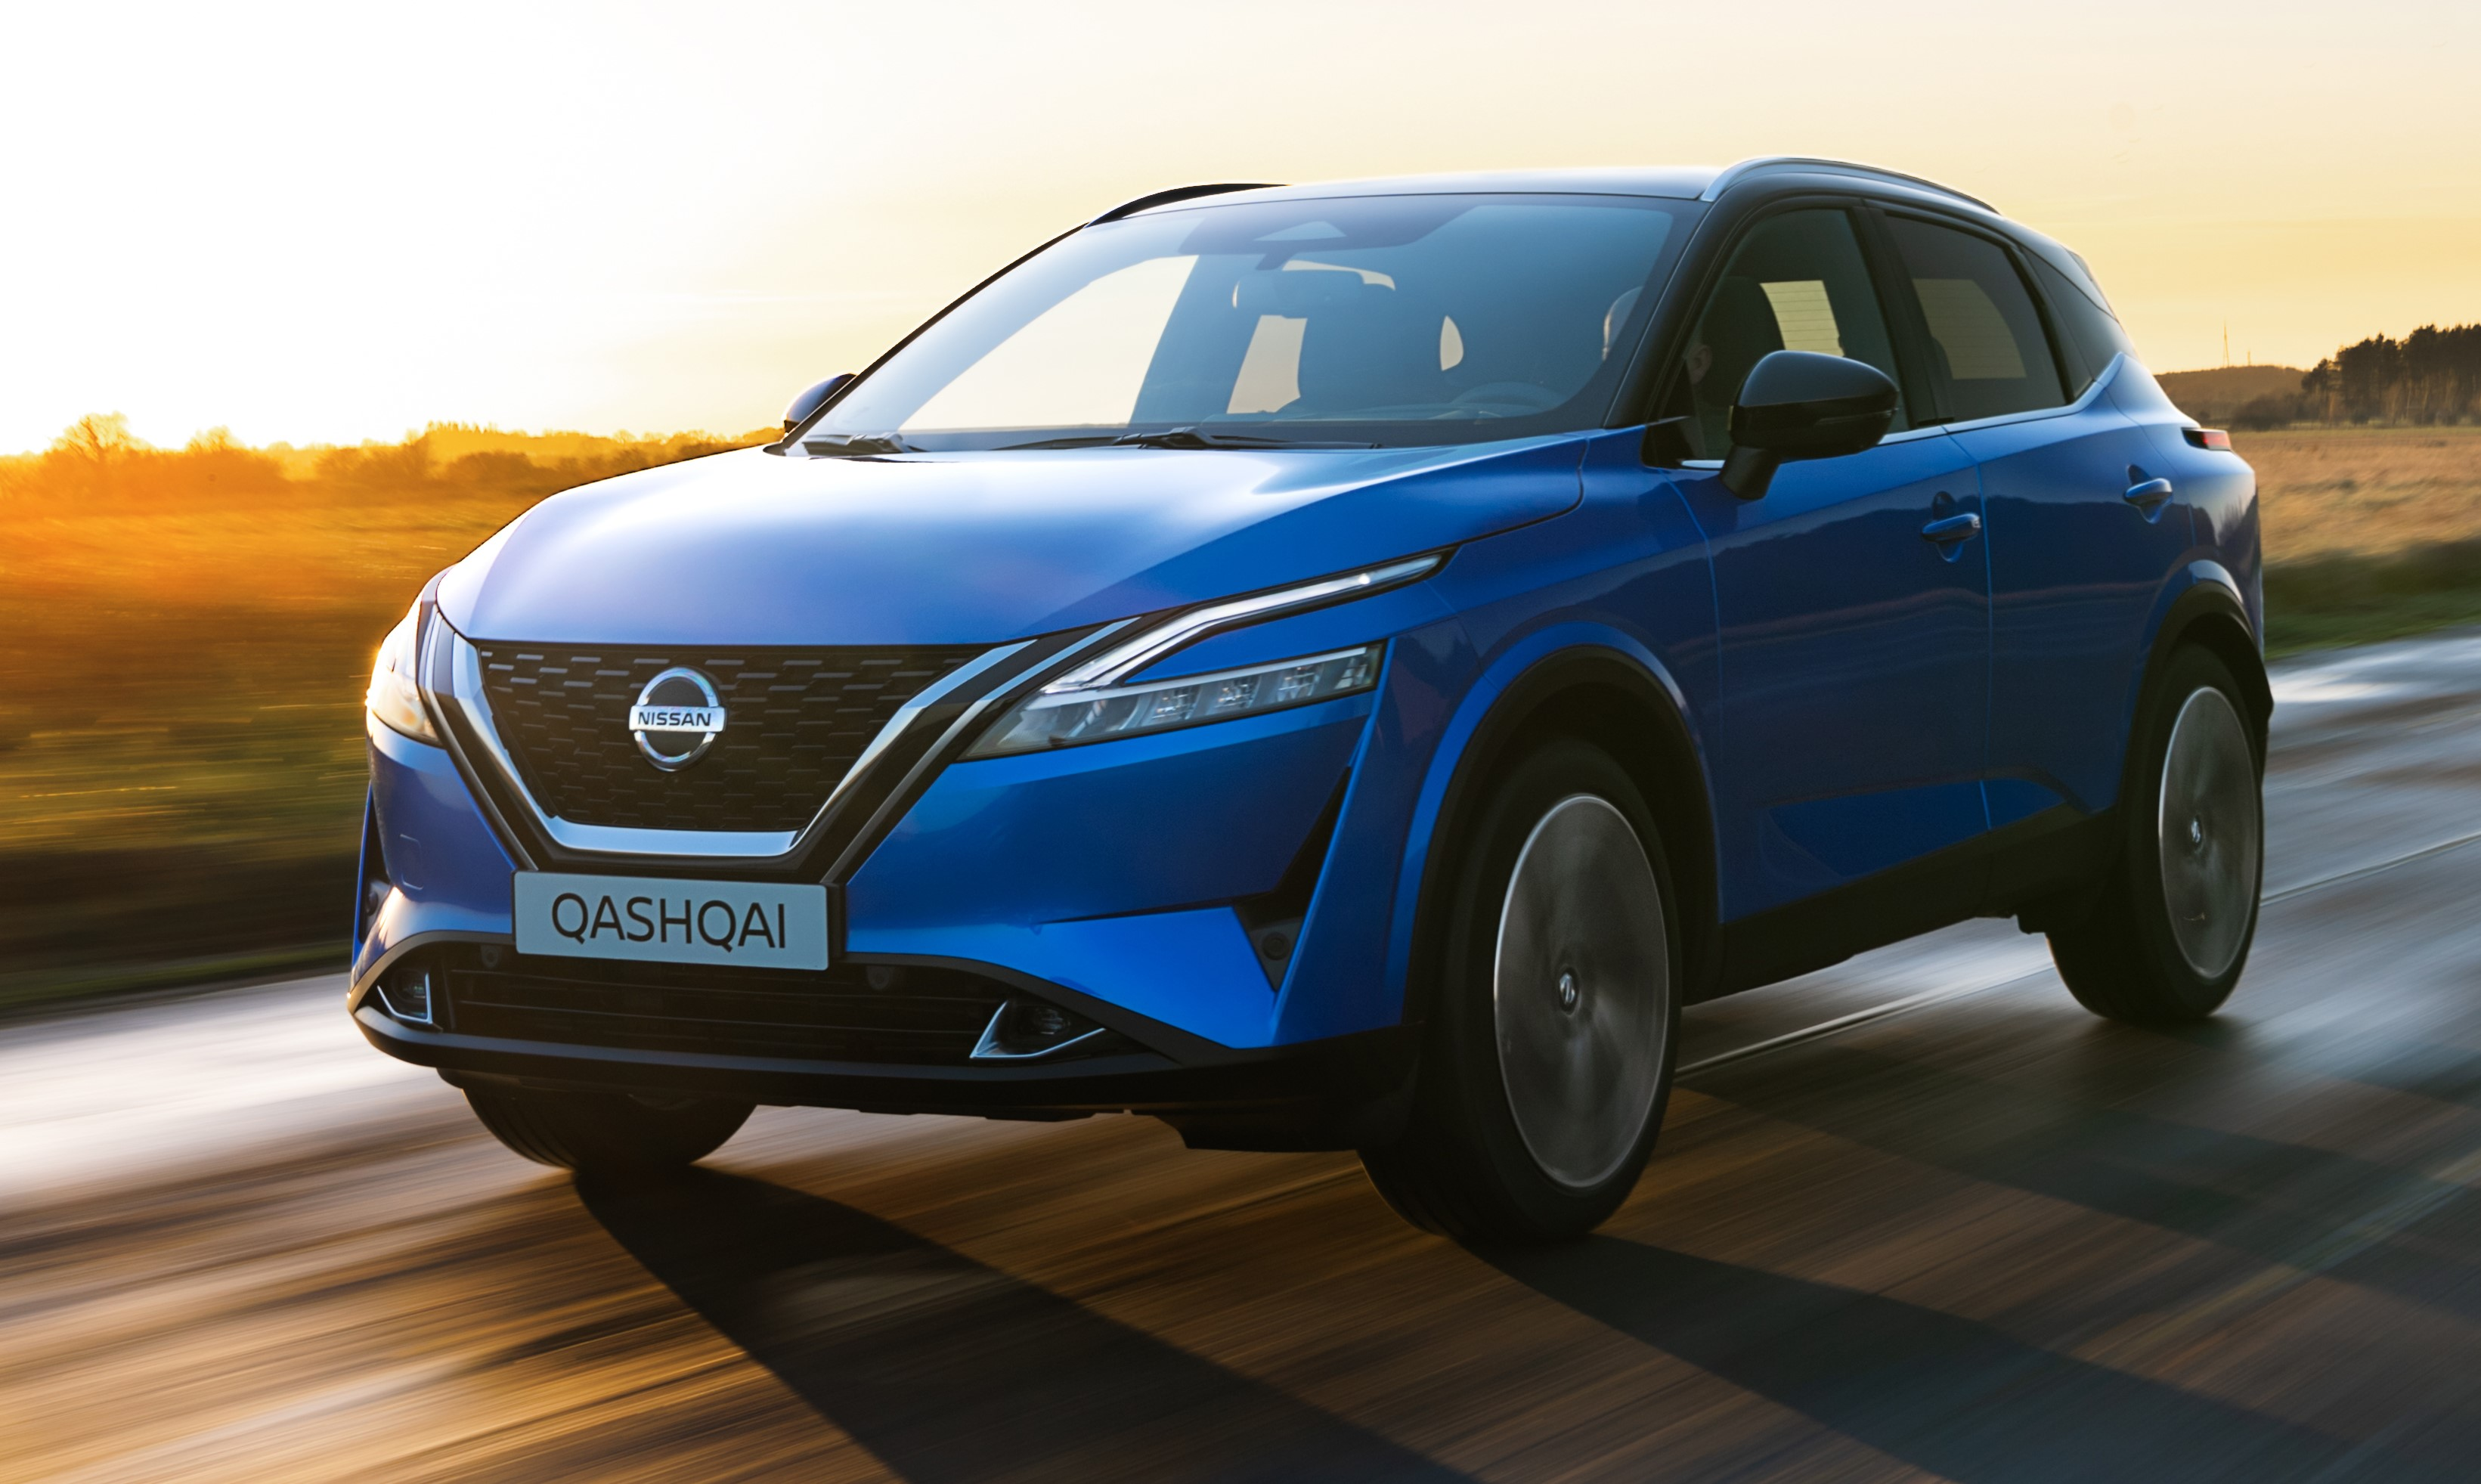 All-new Nissan Qashqai is revealed